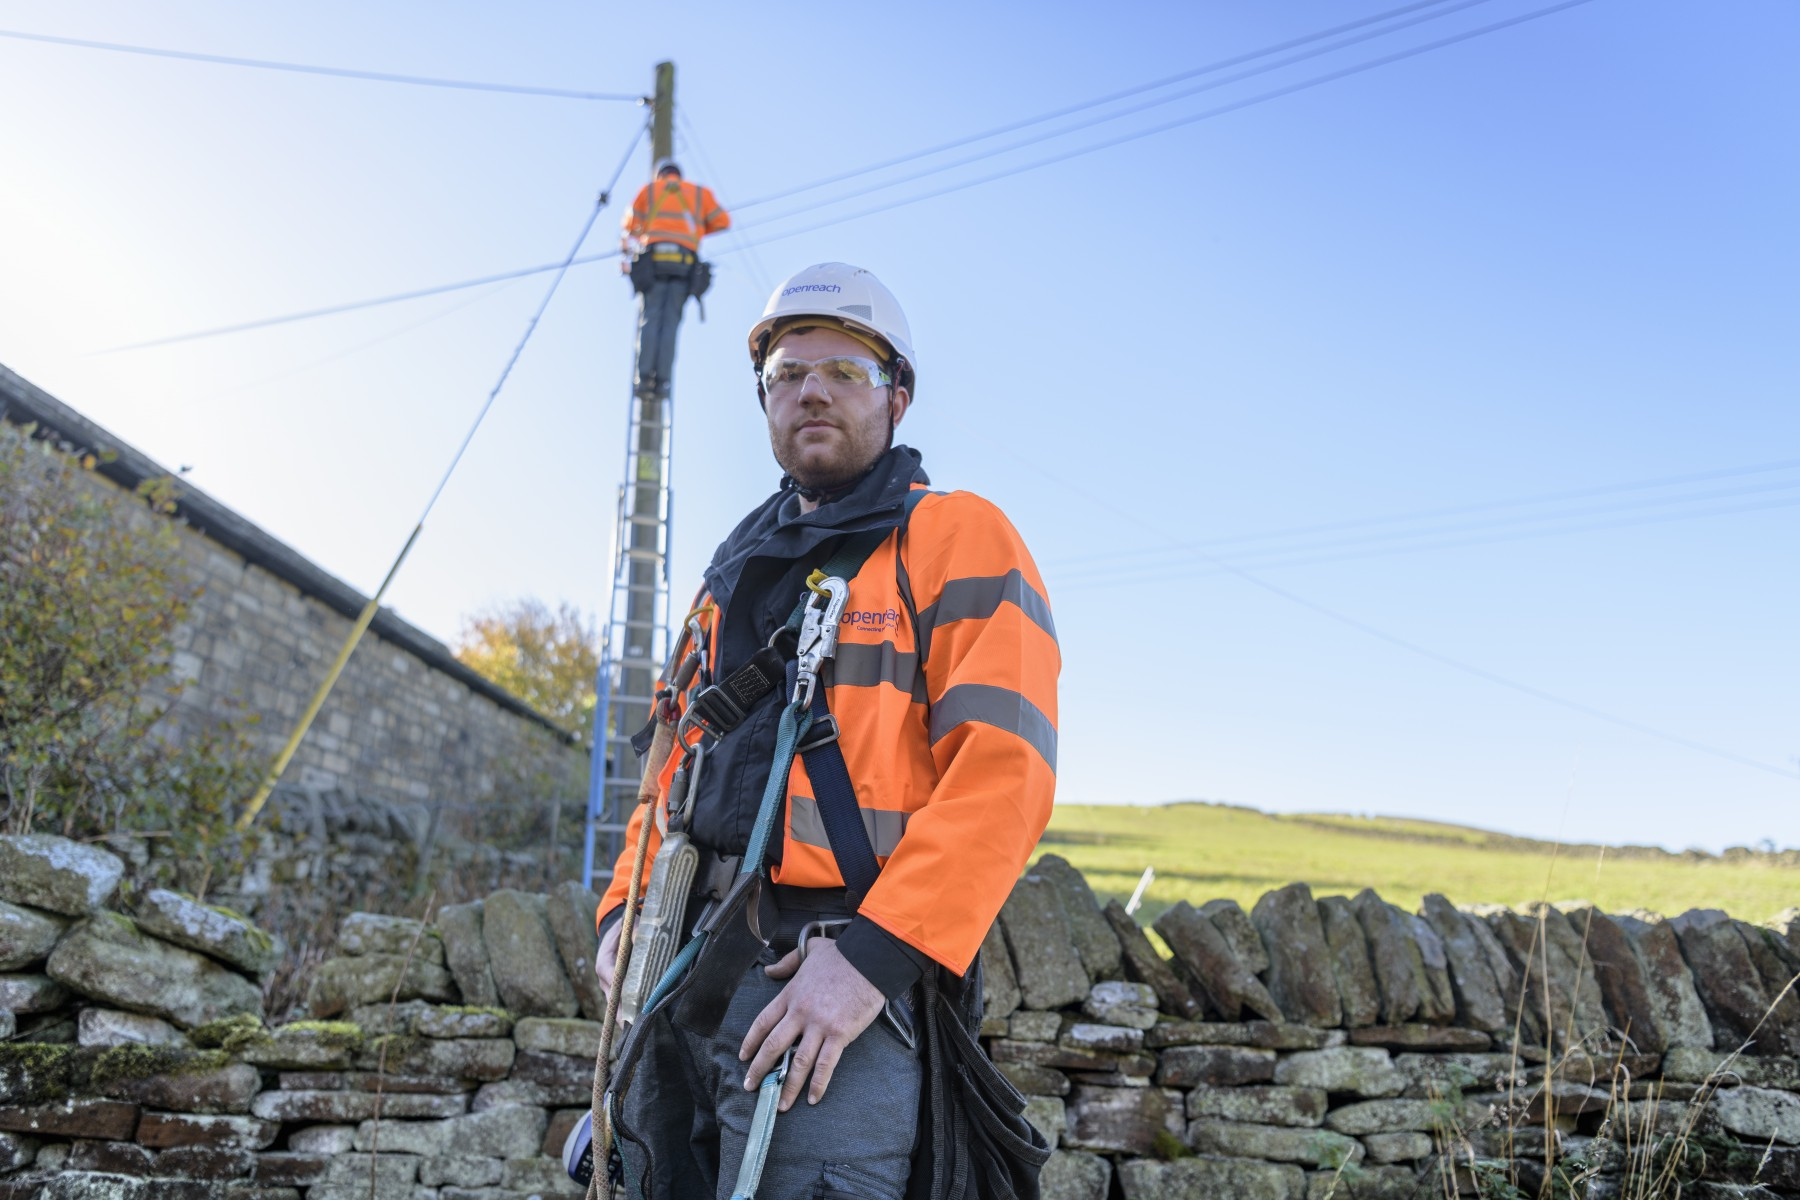 Engineer with pole climber in background